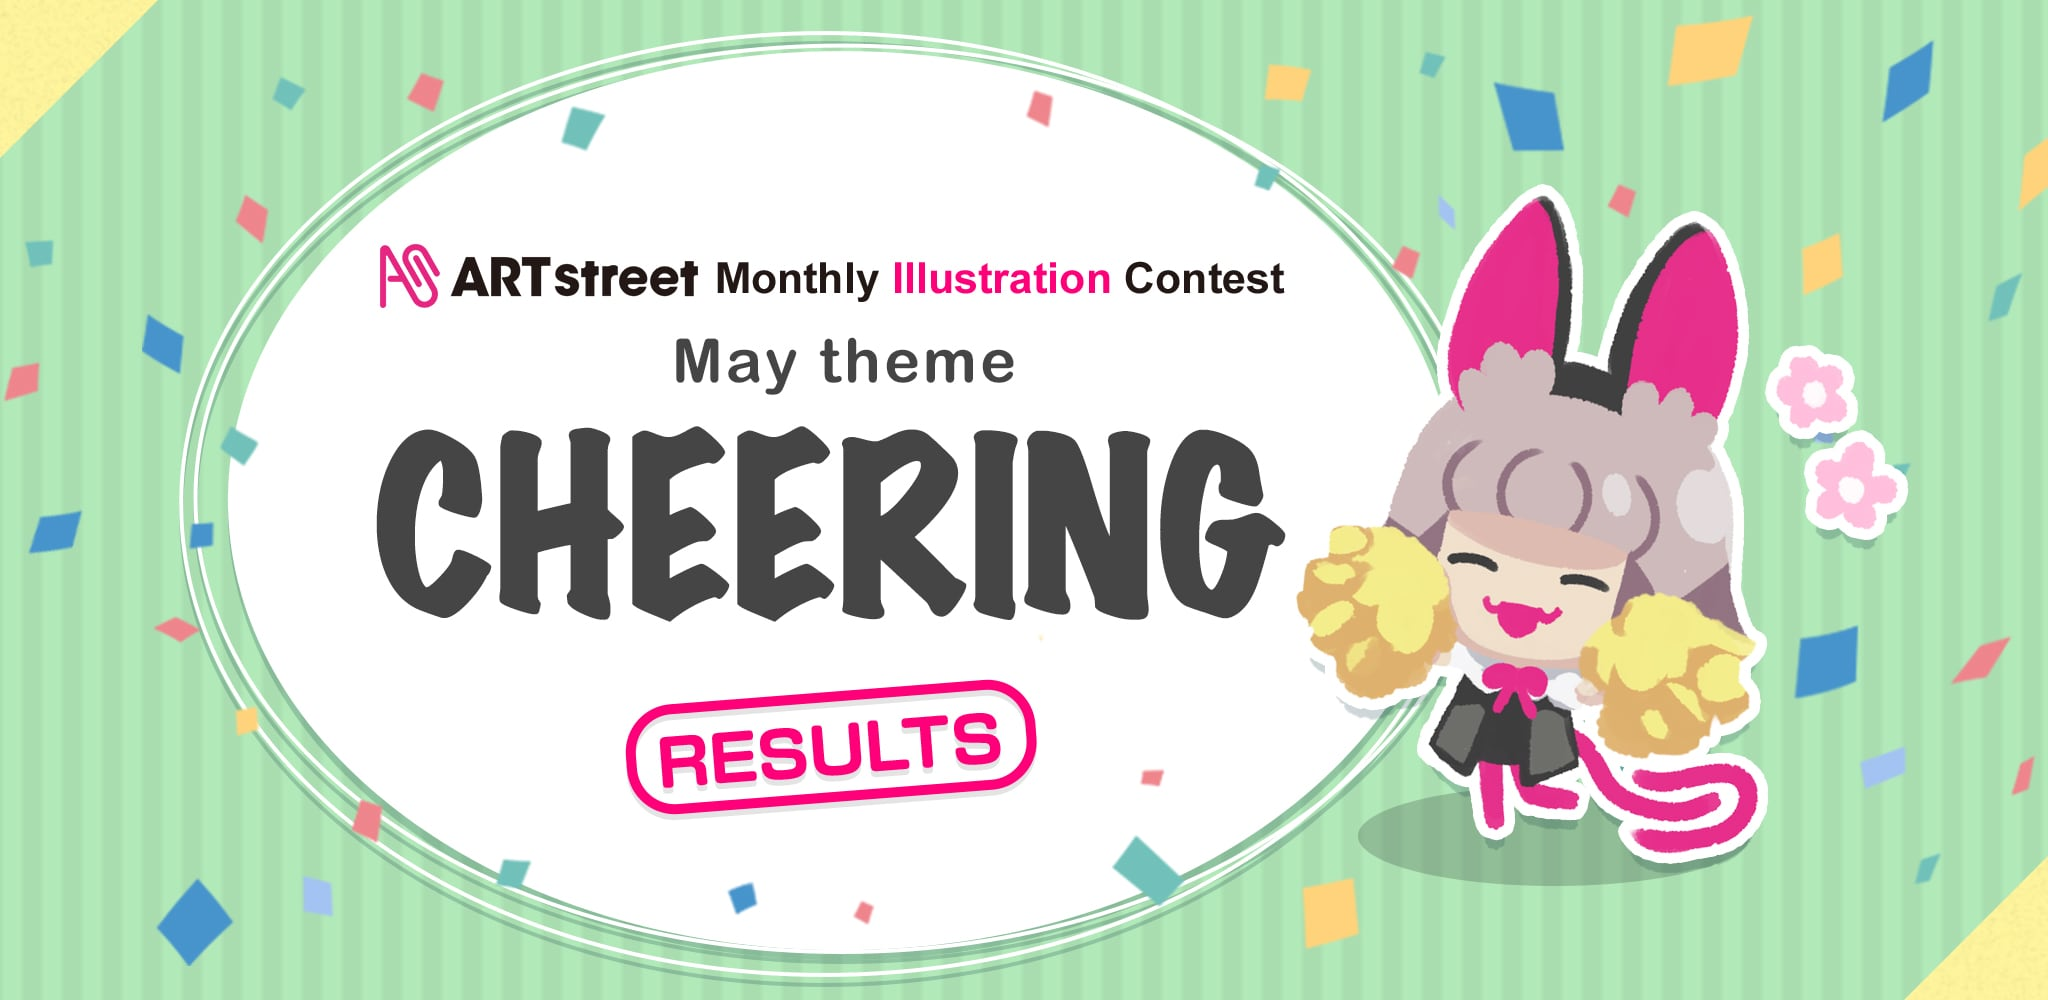 ART street Monthly Illustration Contest May Theme: Cheering Results | Contest - ART street by MediBang